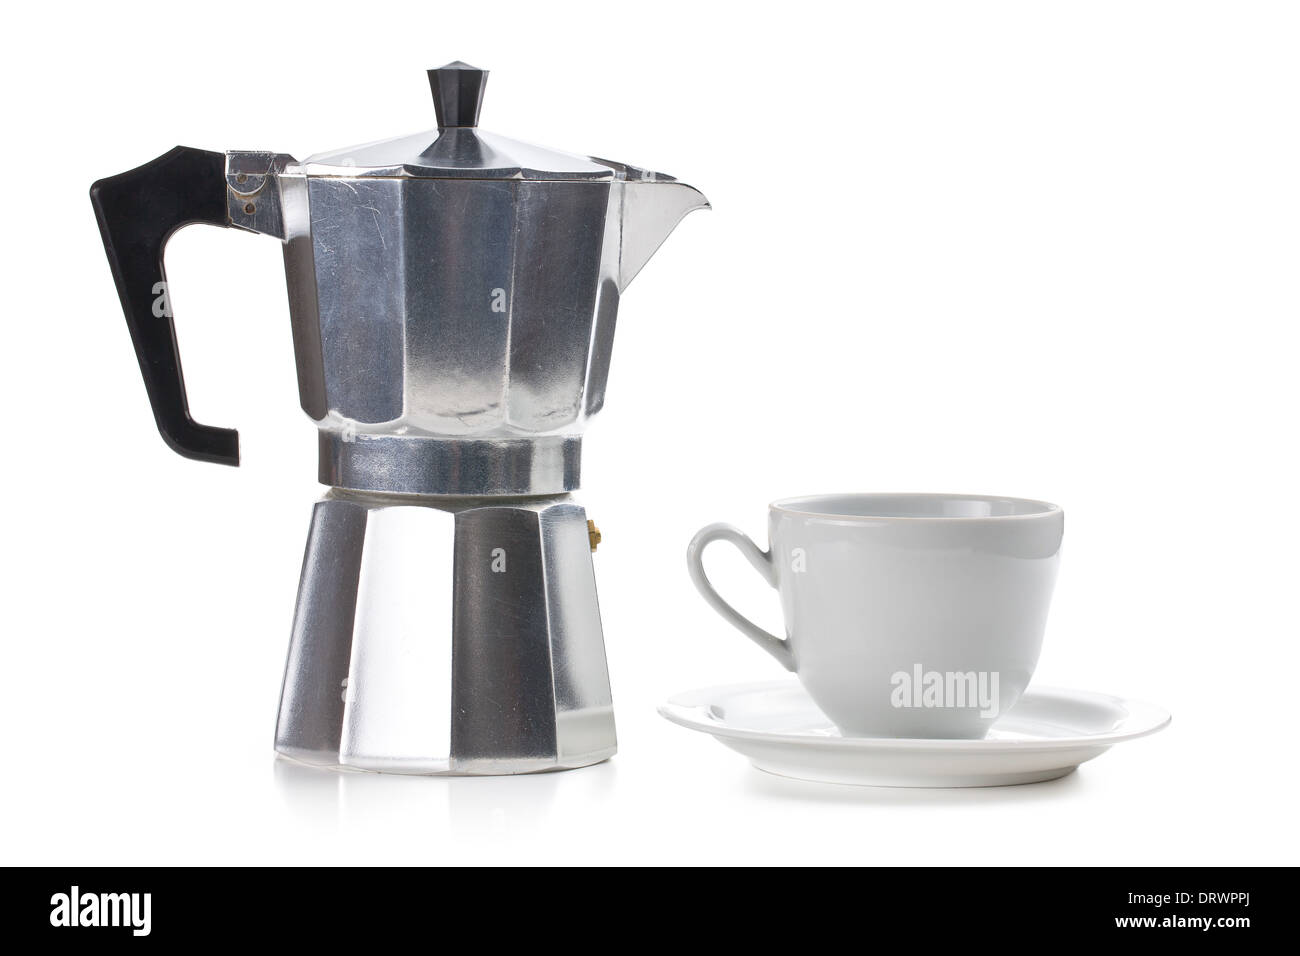 coffee maker with ceramic cup on white background - Stock Image